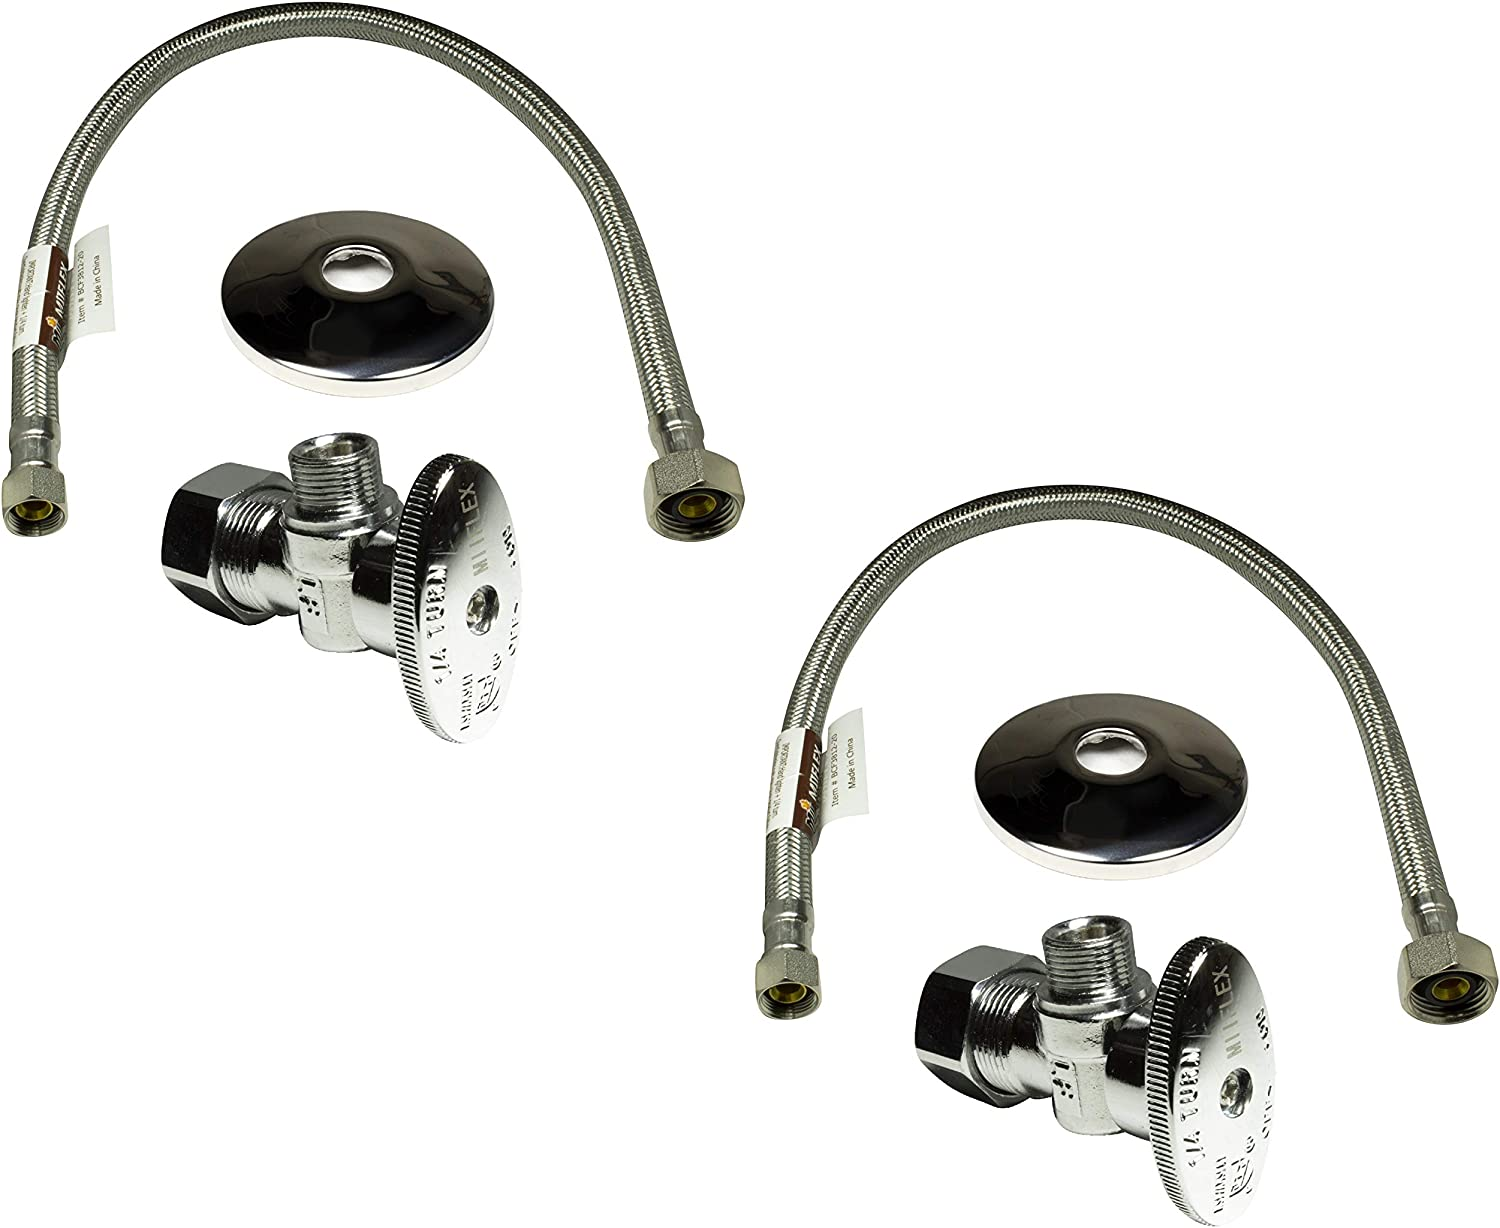 OD Compression Outlet Angle Shut Off Valve Escutcheon Plate 2 Pack 20 Long Stainless Steel Braided Faucet Water Supply Line Complete Set 1//2 in NOM Inlet x 3//8 in